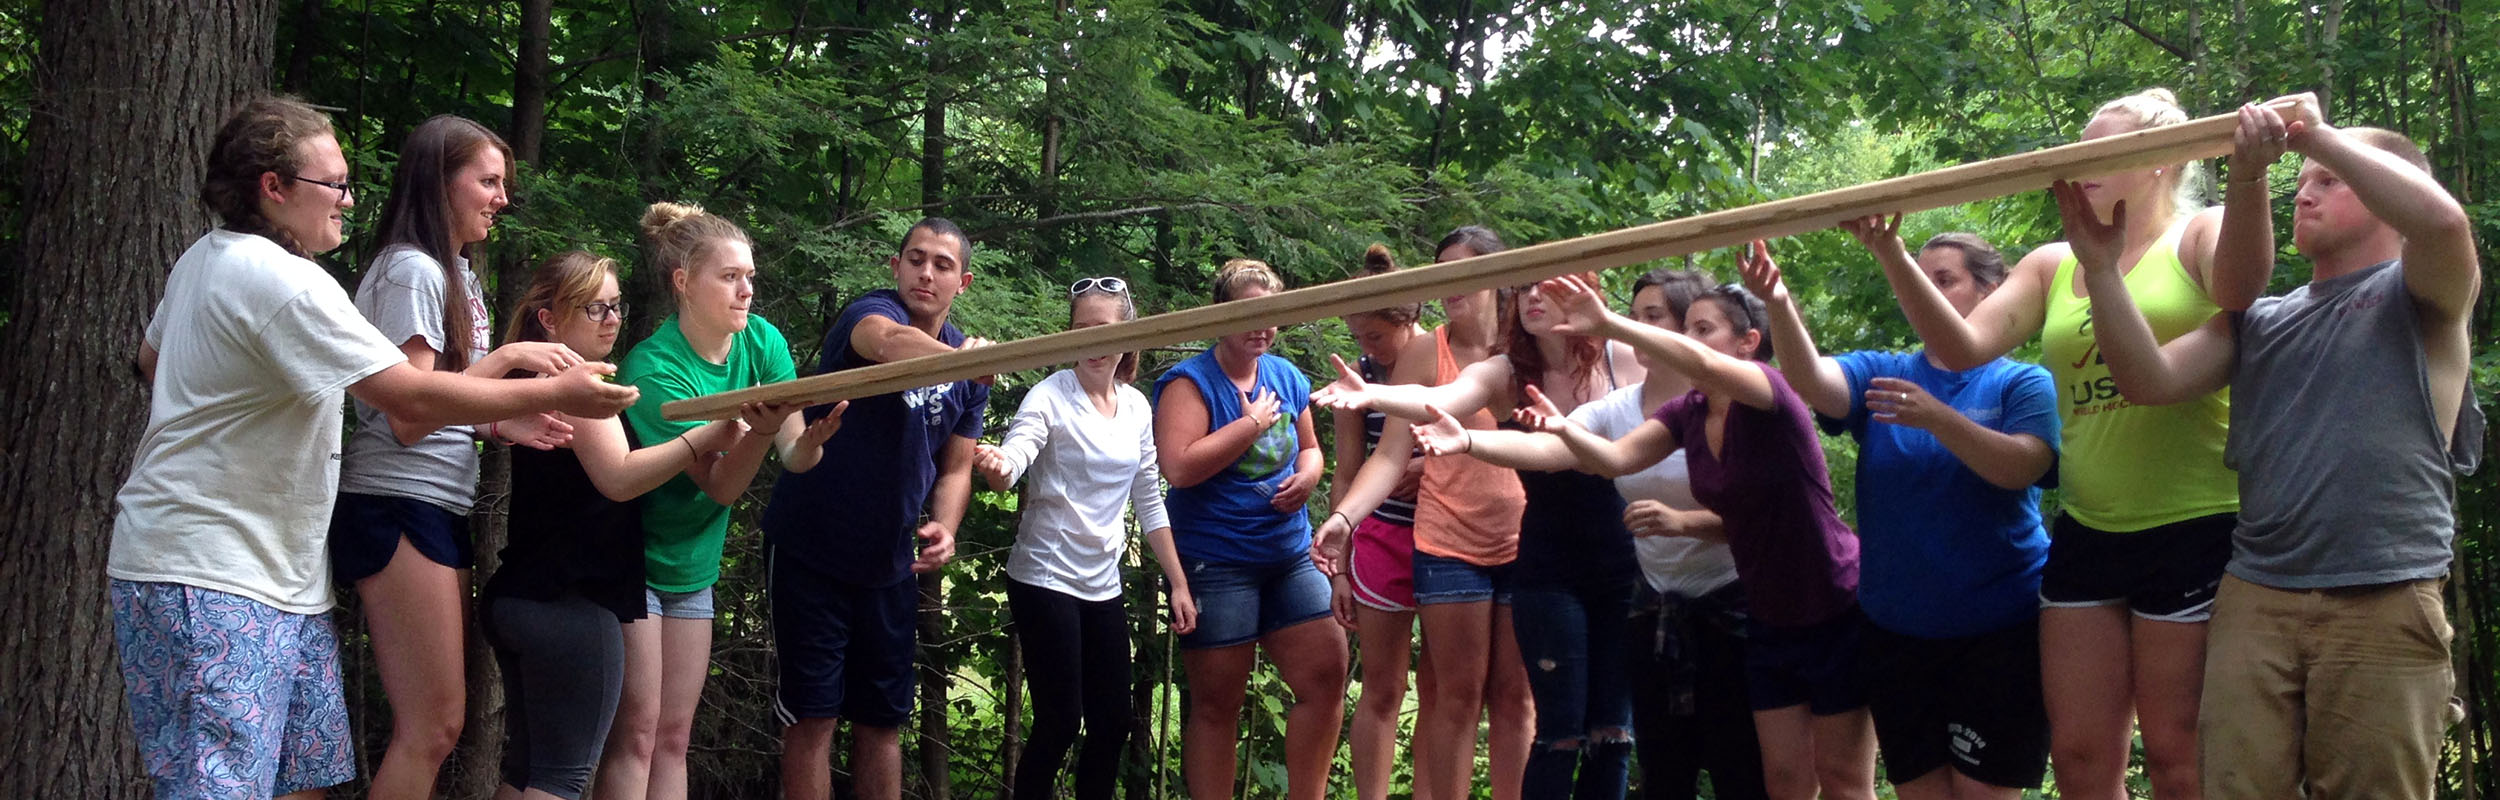 Group Retreats for Youth Groups, Church Groups and Teams in New Hampshire at Camp Mowglis